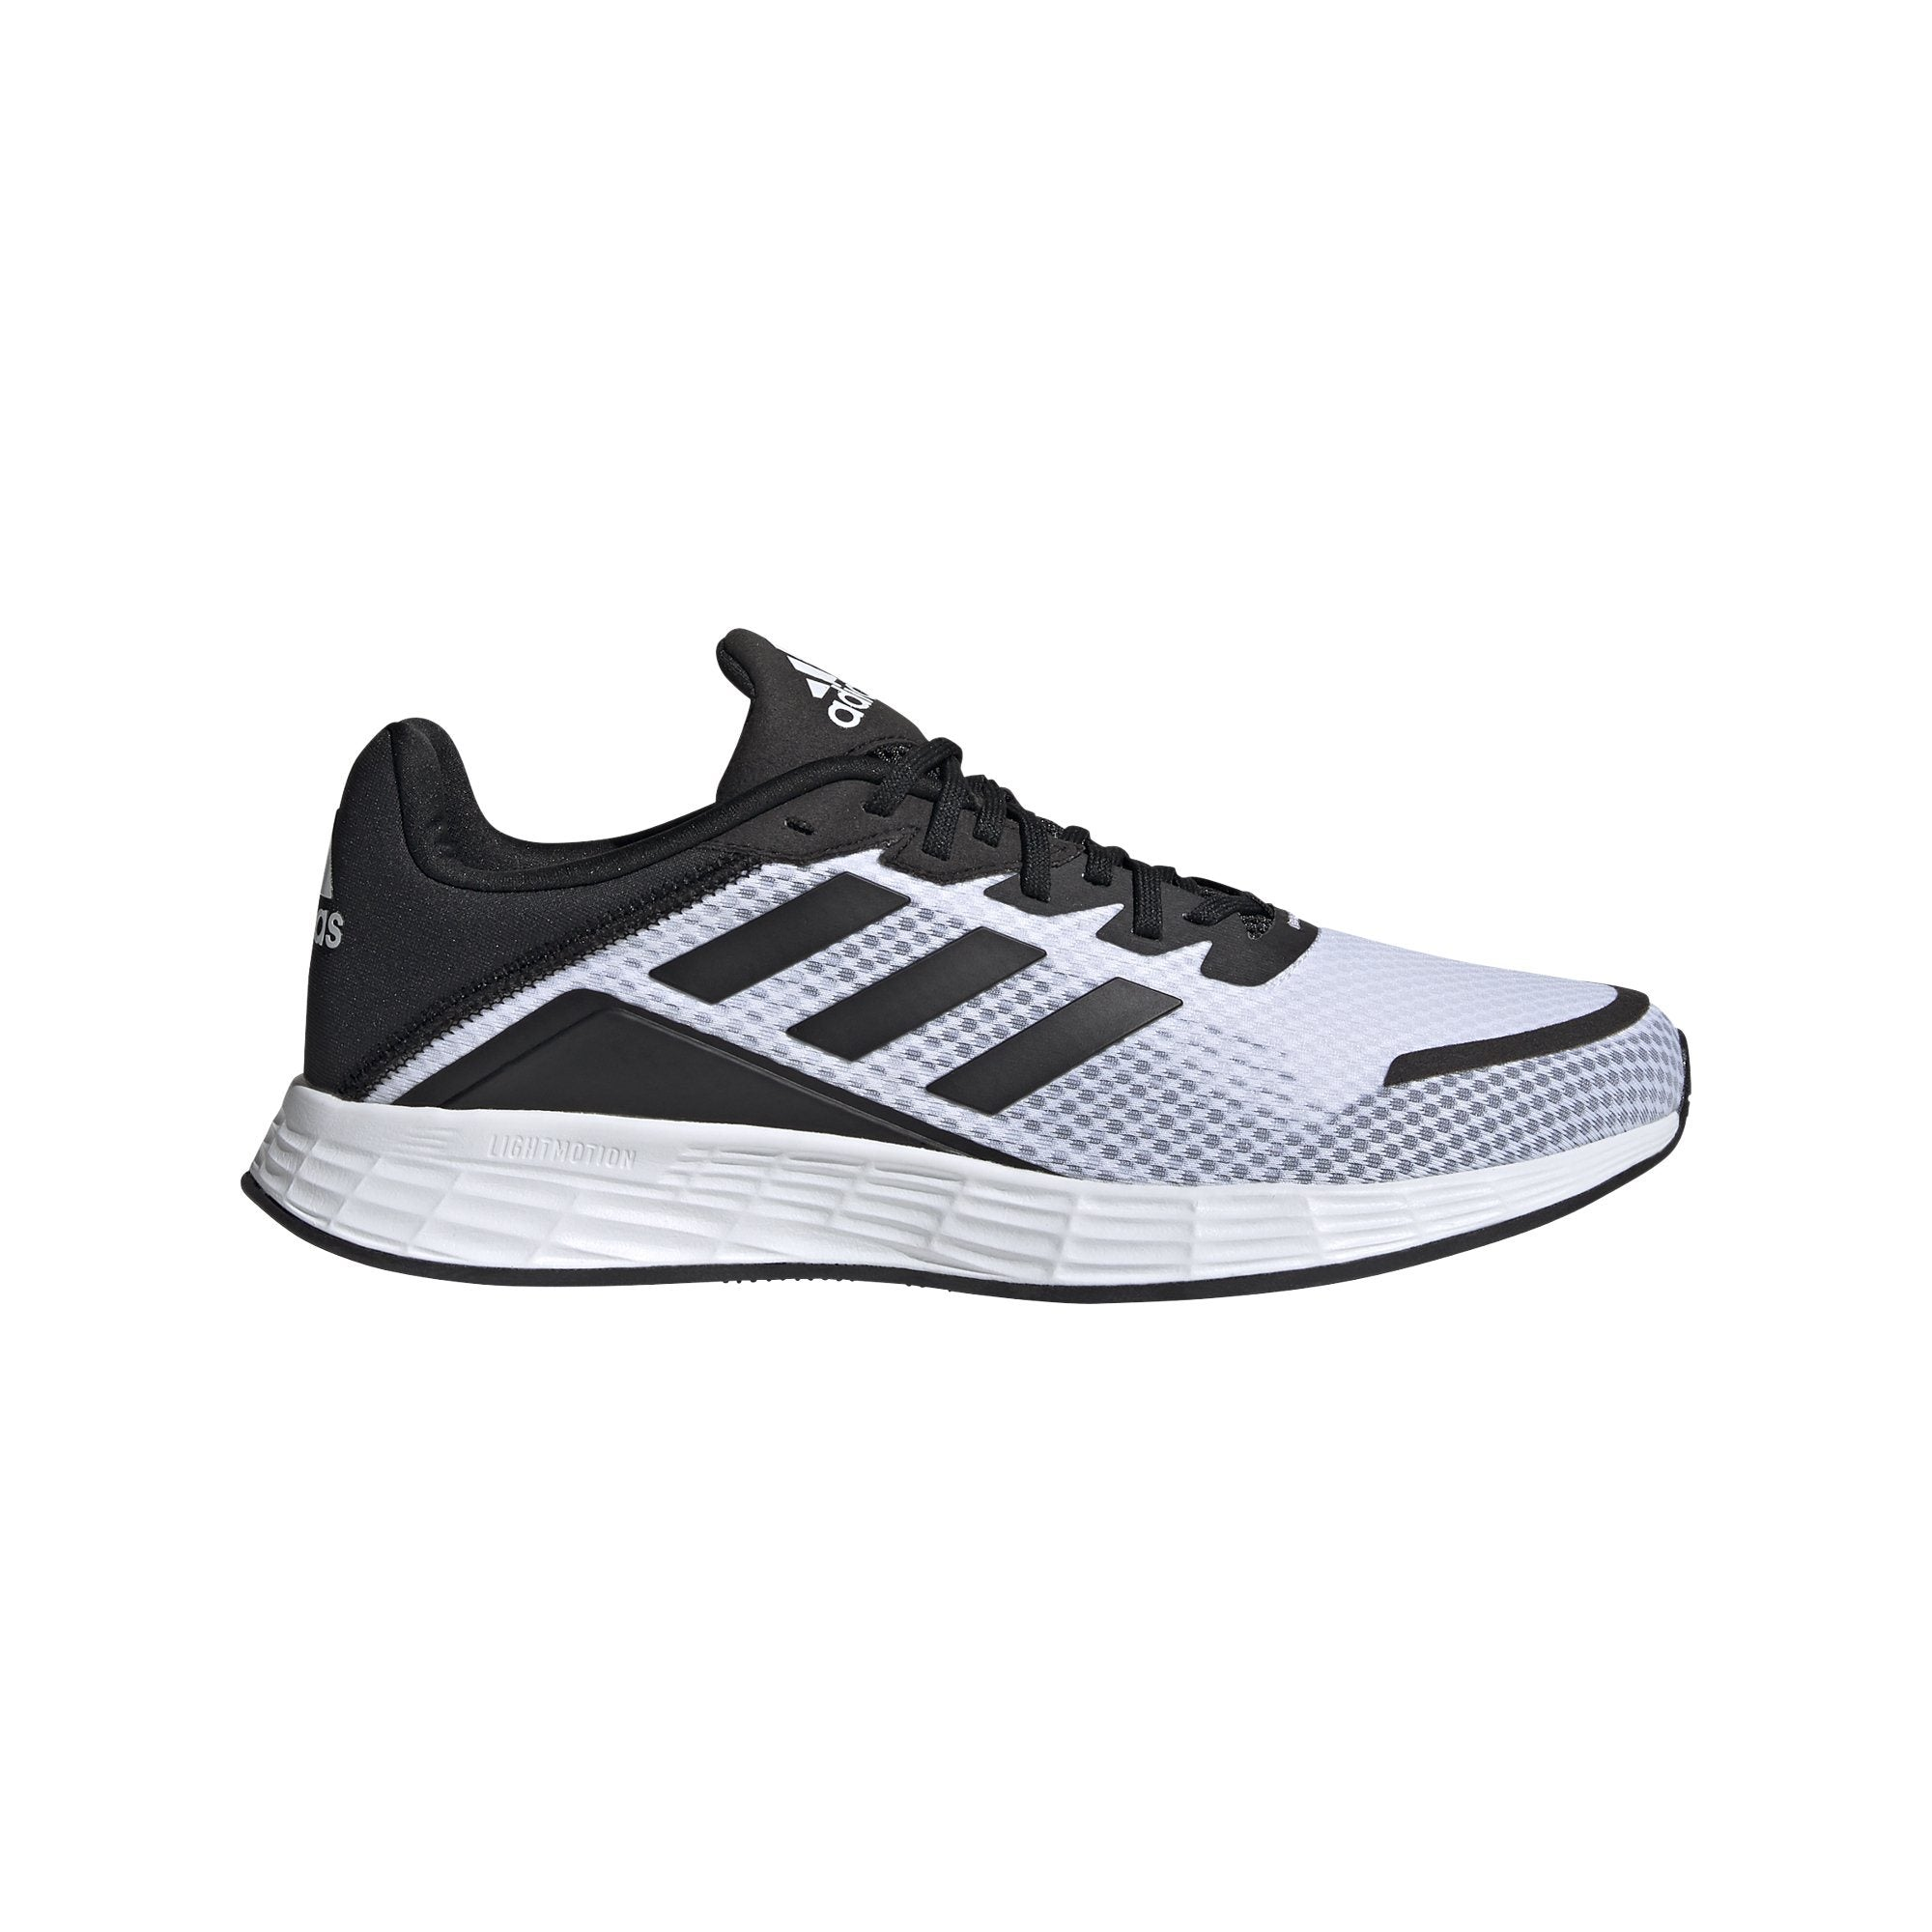 Adidas Mens Duramo SL Shoes - Ftwr White/Core Black/Core Black SP-Footwear-Mens Adidas